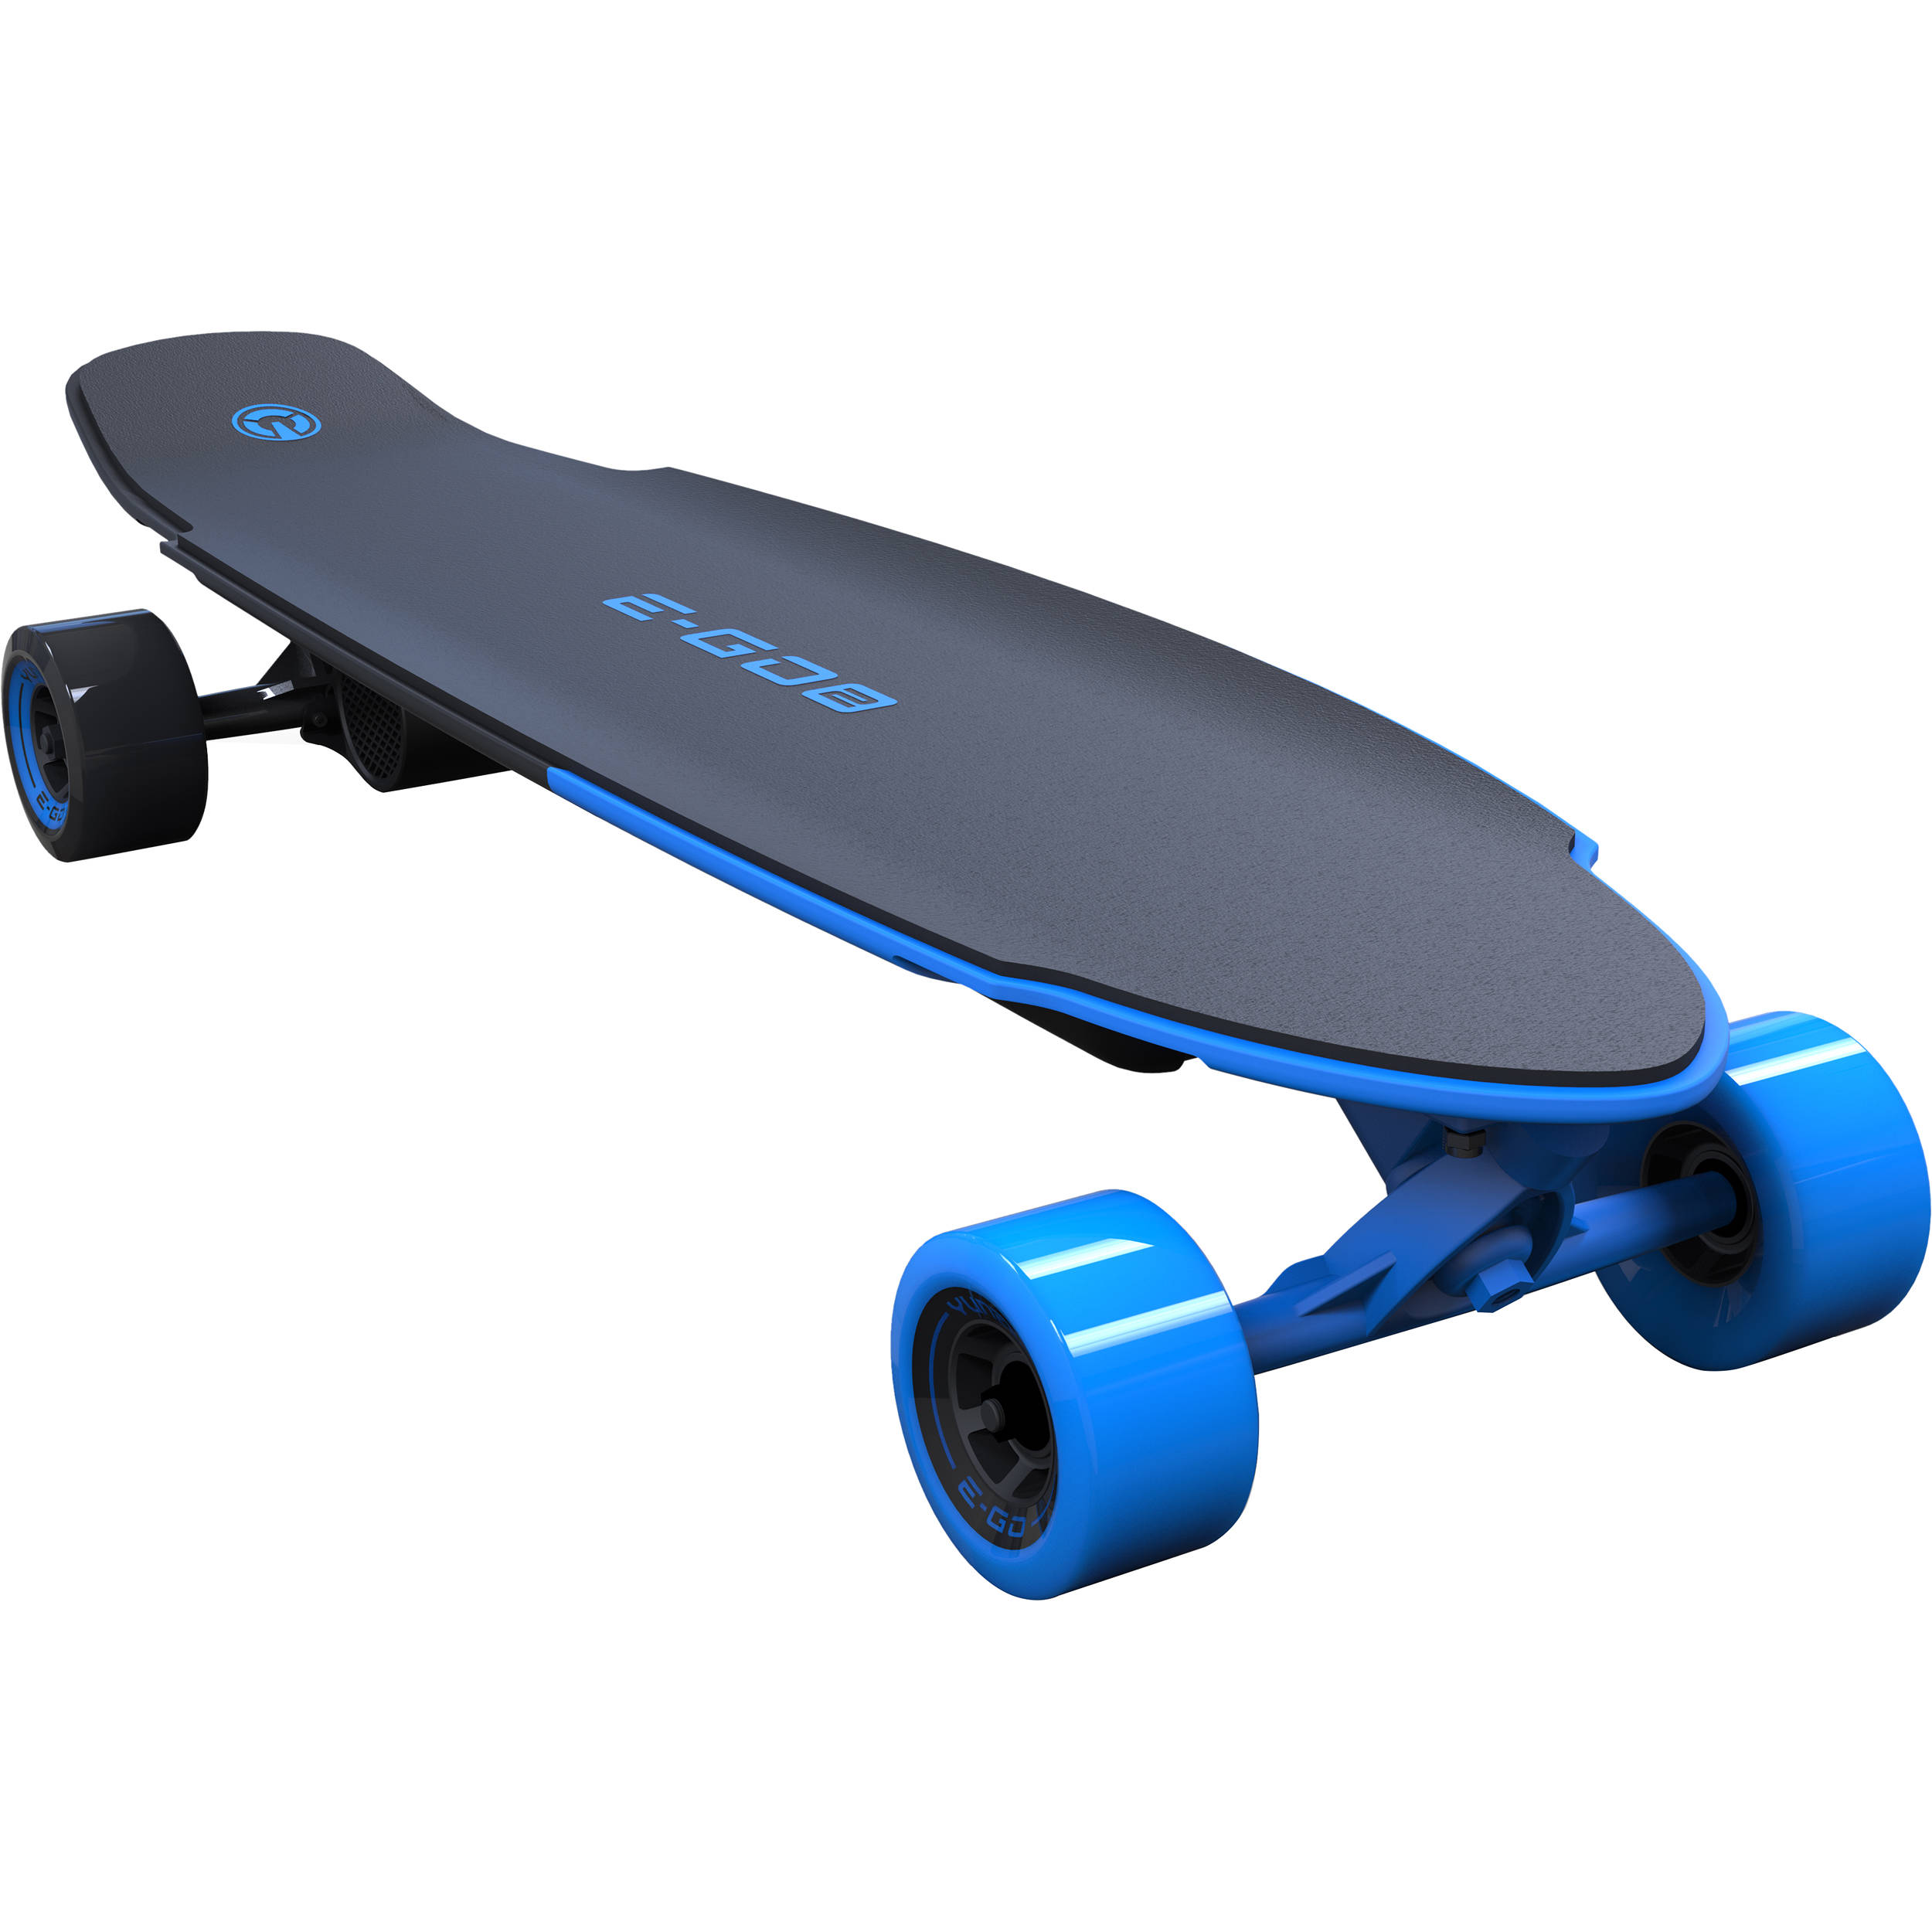 Yuneec Ego 2 Electric Longboard With Remote Control